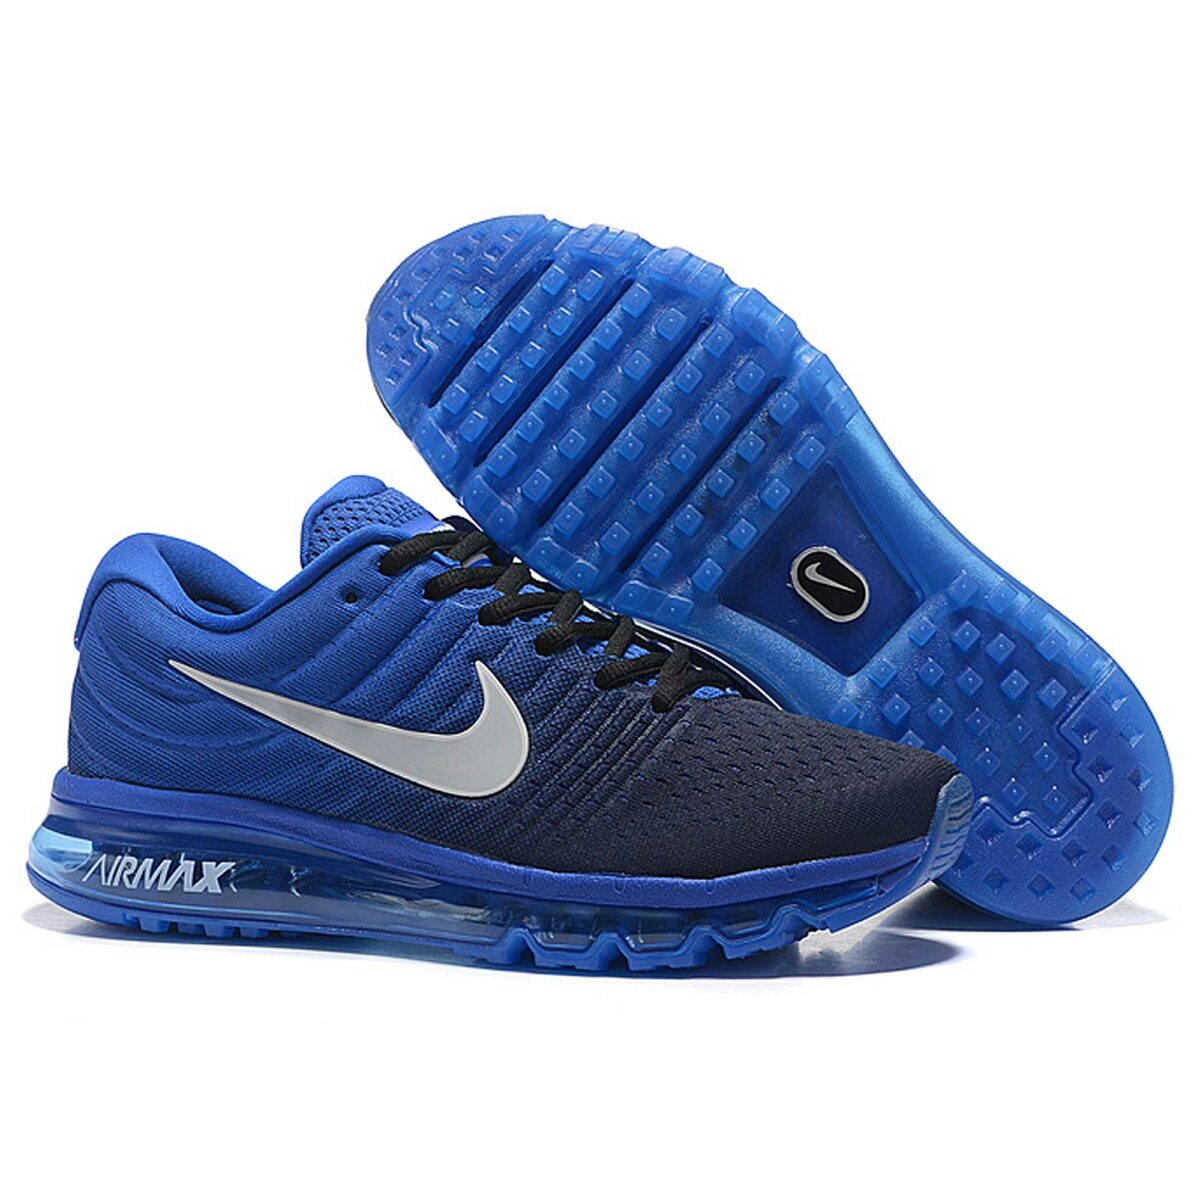 nike air max 2017 dark blue blue 849560-401 купить